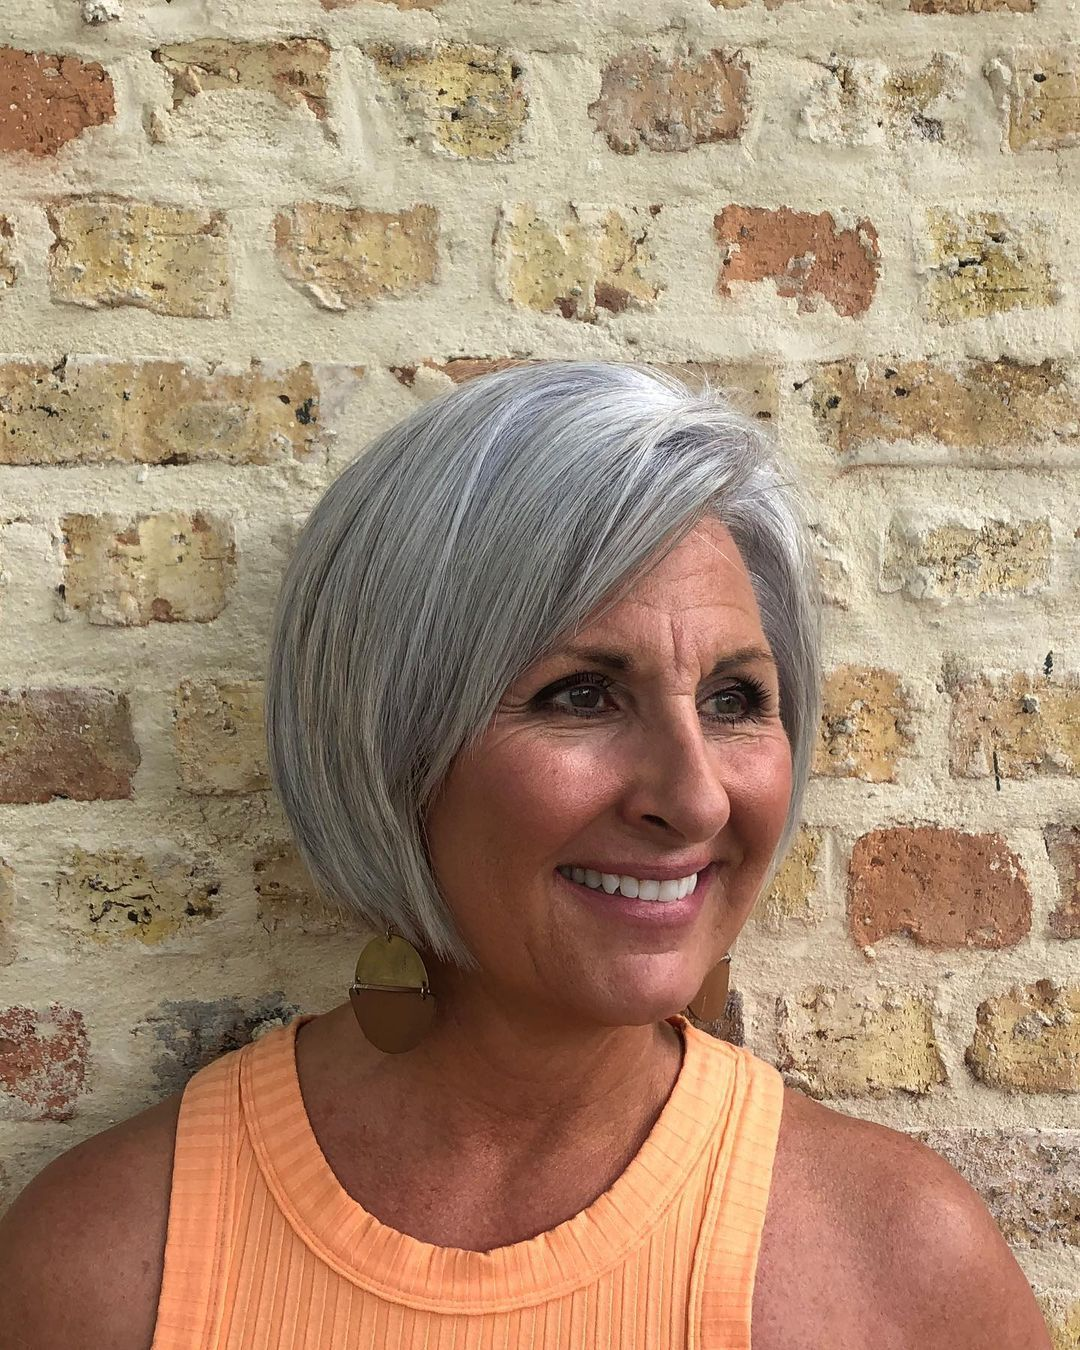 50+ Attractive Short Hairstyles for Women Over 60 (Updated 2021) db7f67b60332d7afa1ce9d70ca5d5202